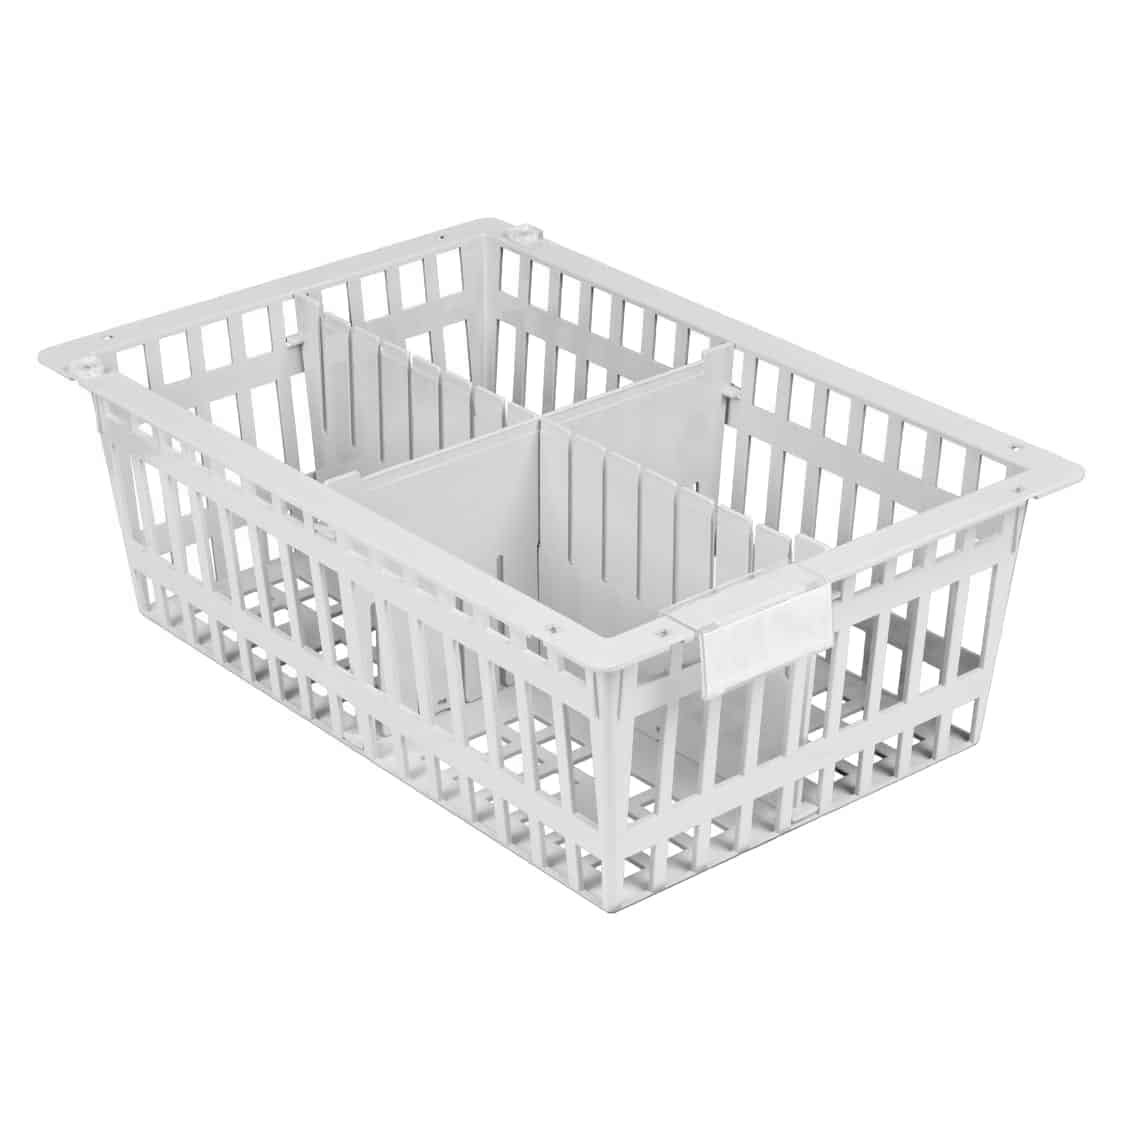 ABS basket (Deep)